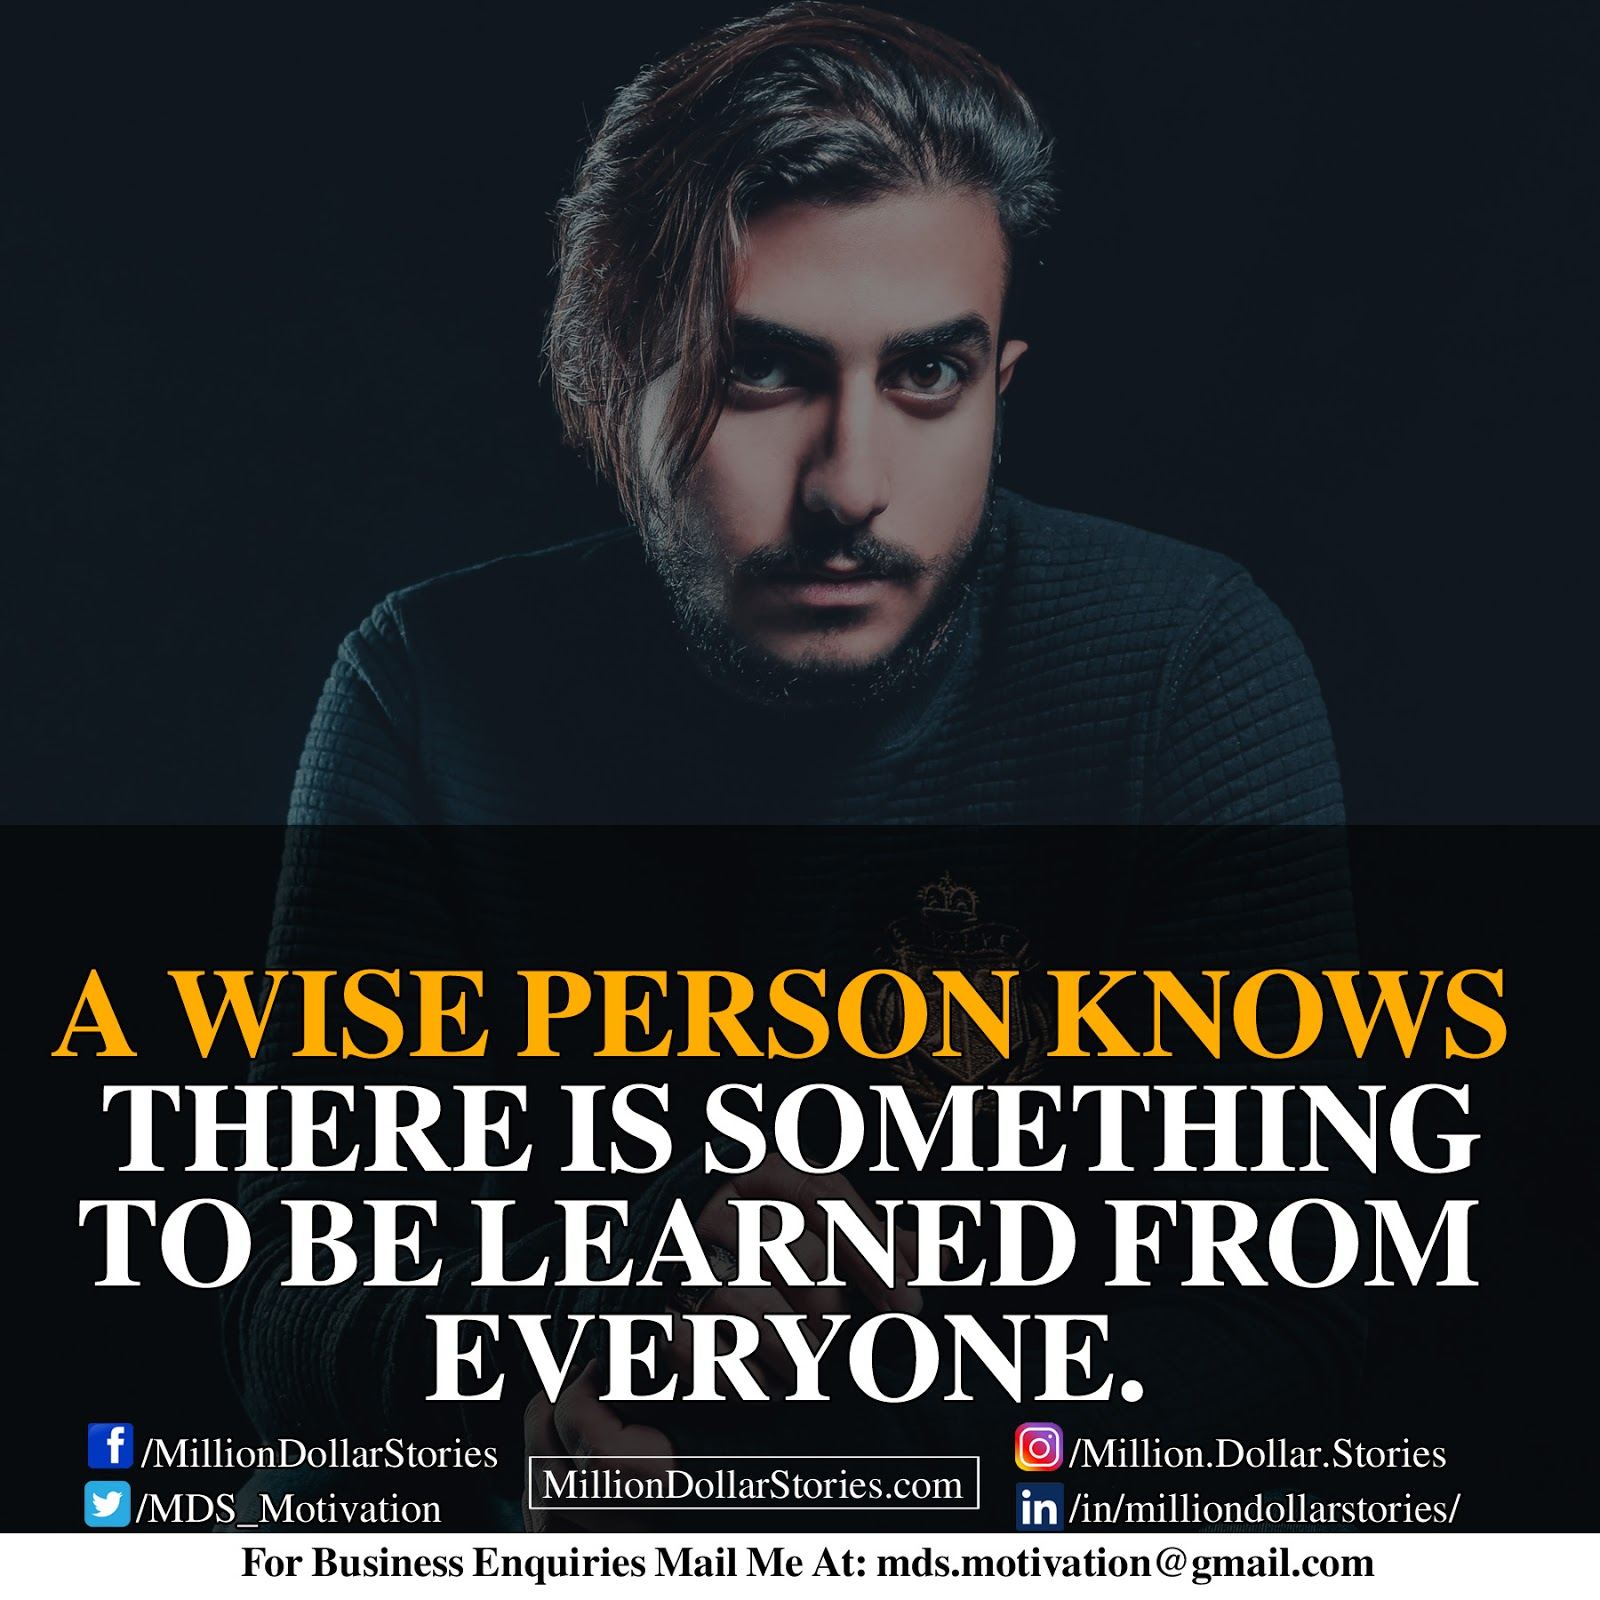 A WISE PERSON KNOWS THERE IS SOMETHING TO BE LEARNED FROM EVERYONE.